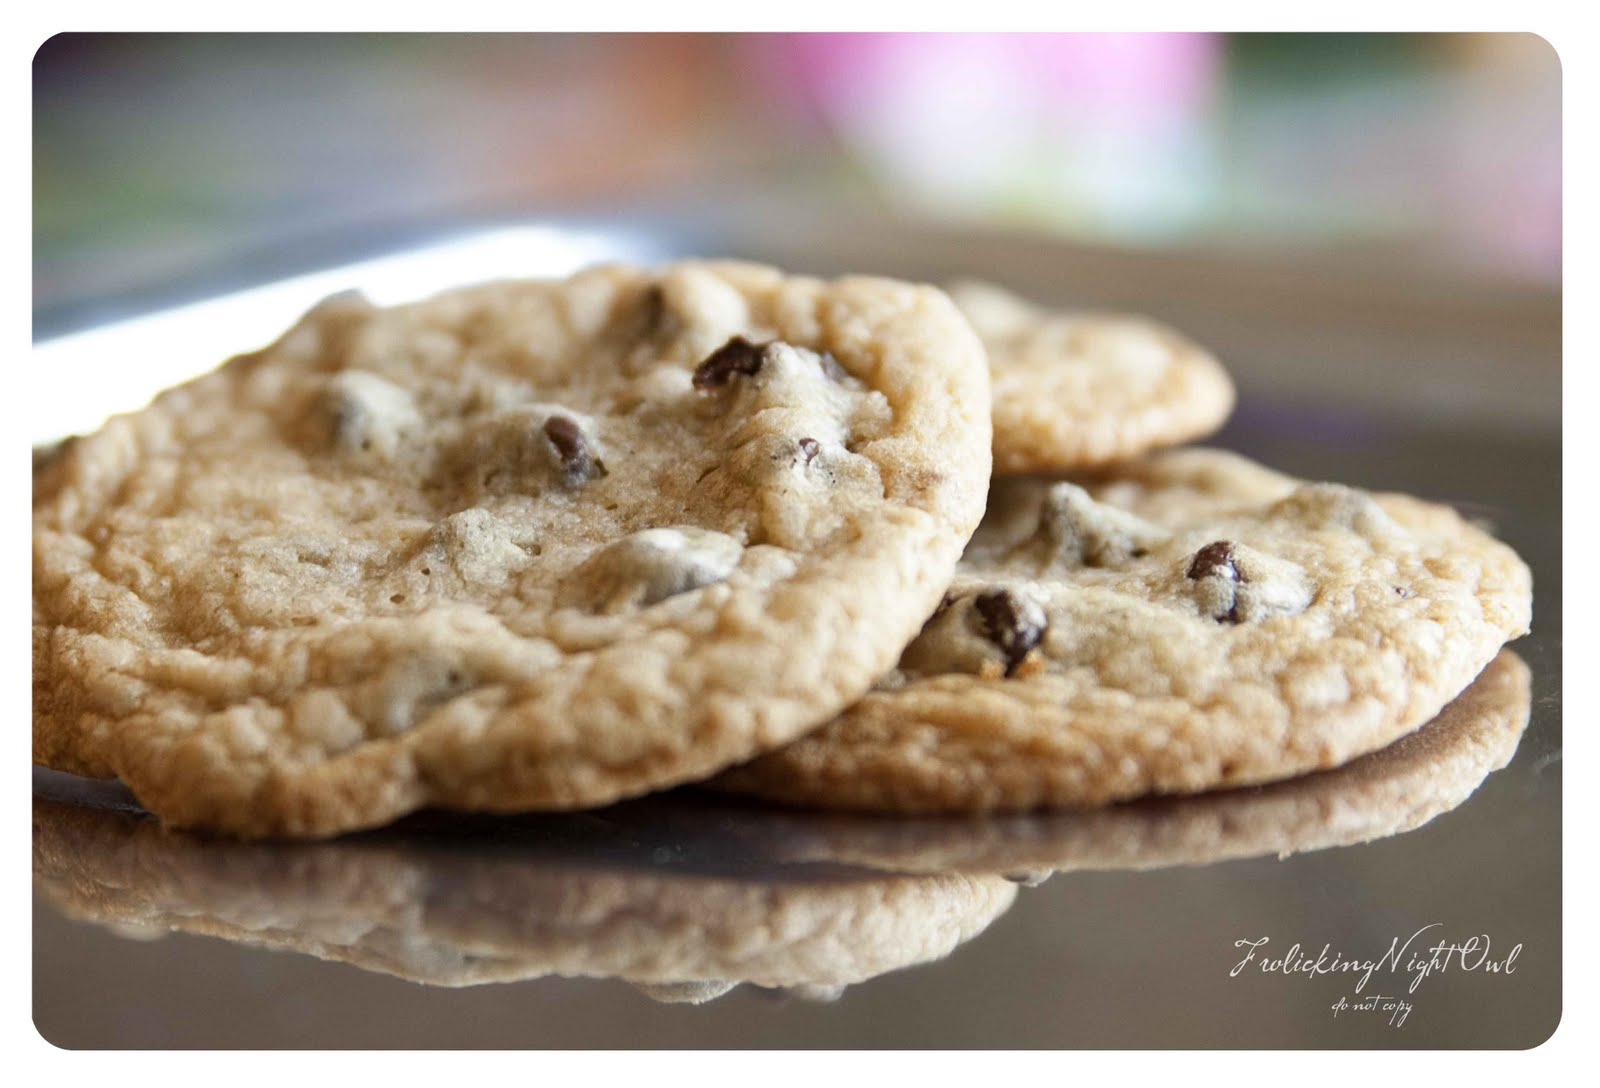 ... Night Owl: Alice Medrich's Chocolate Chip Cookies & Other Happenings